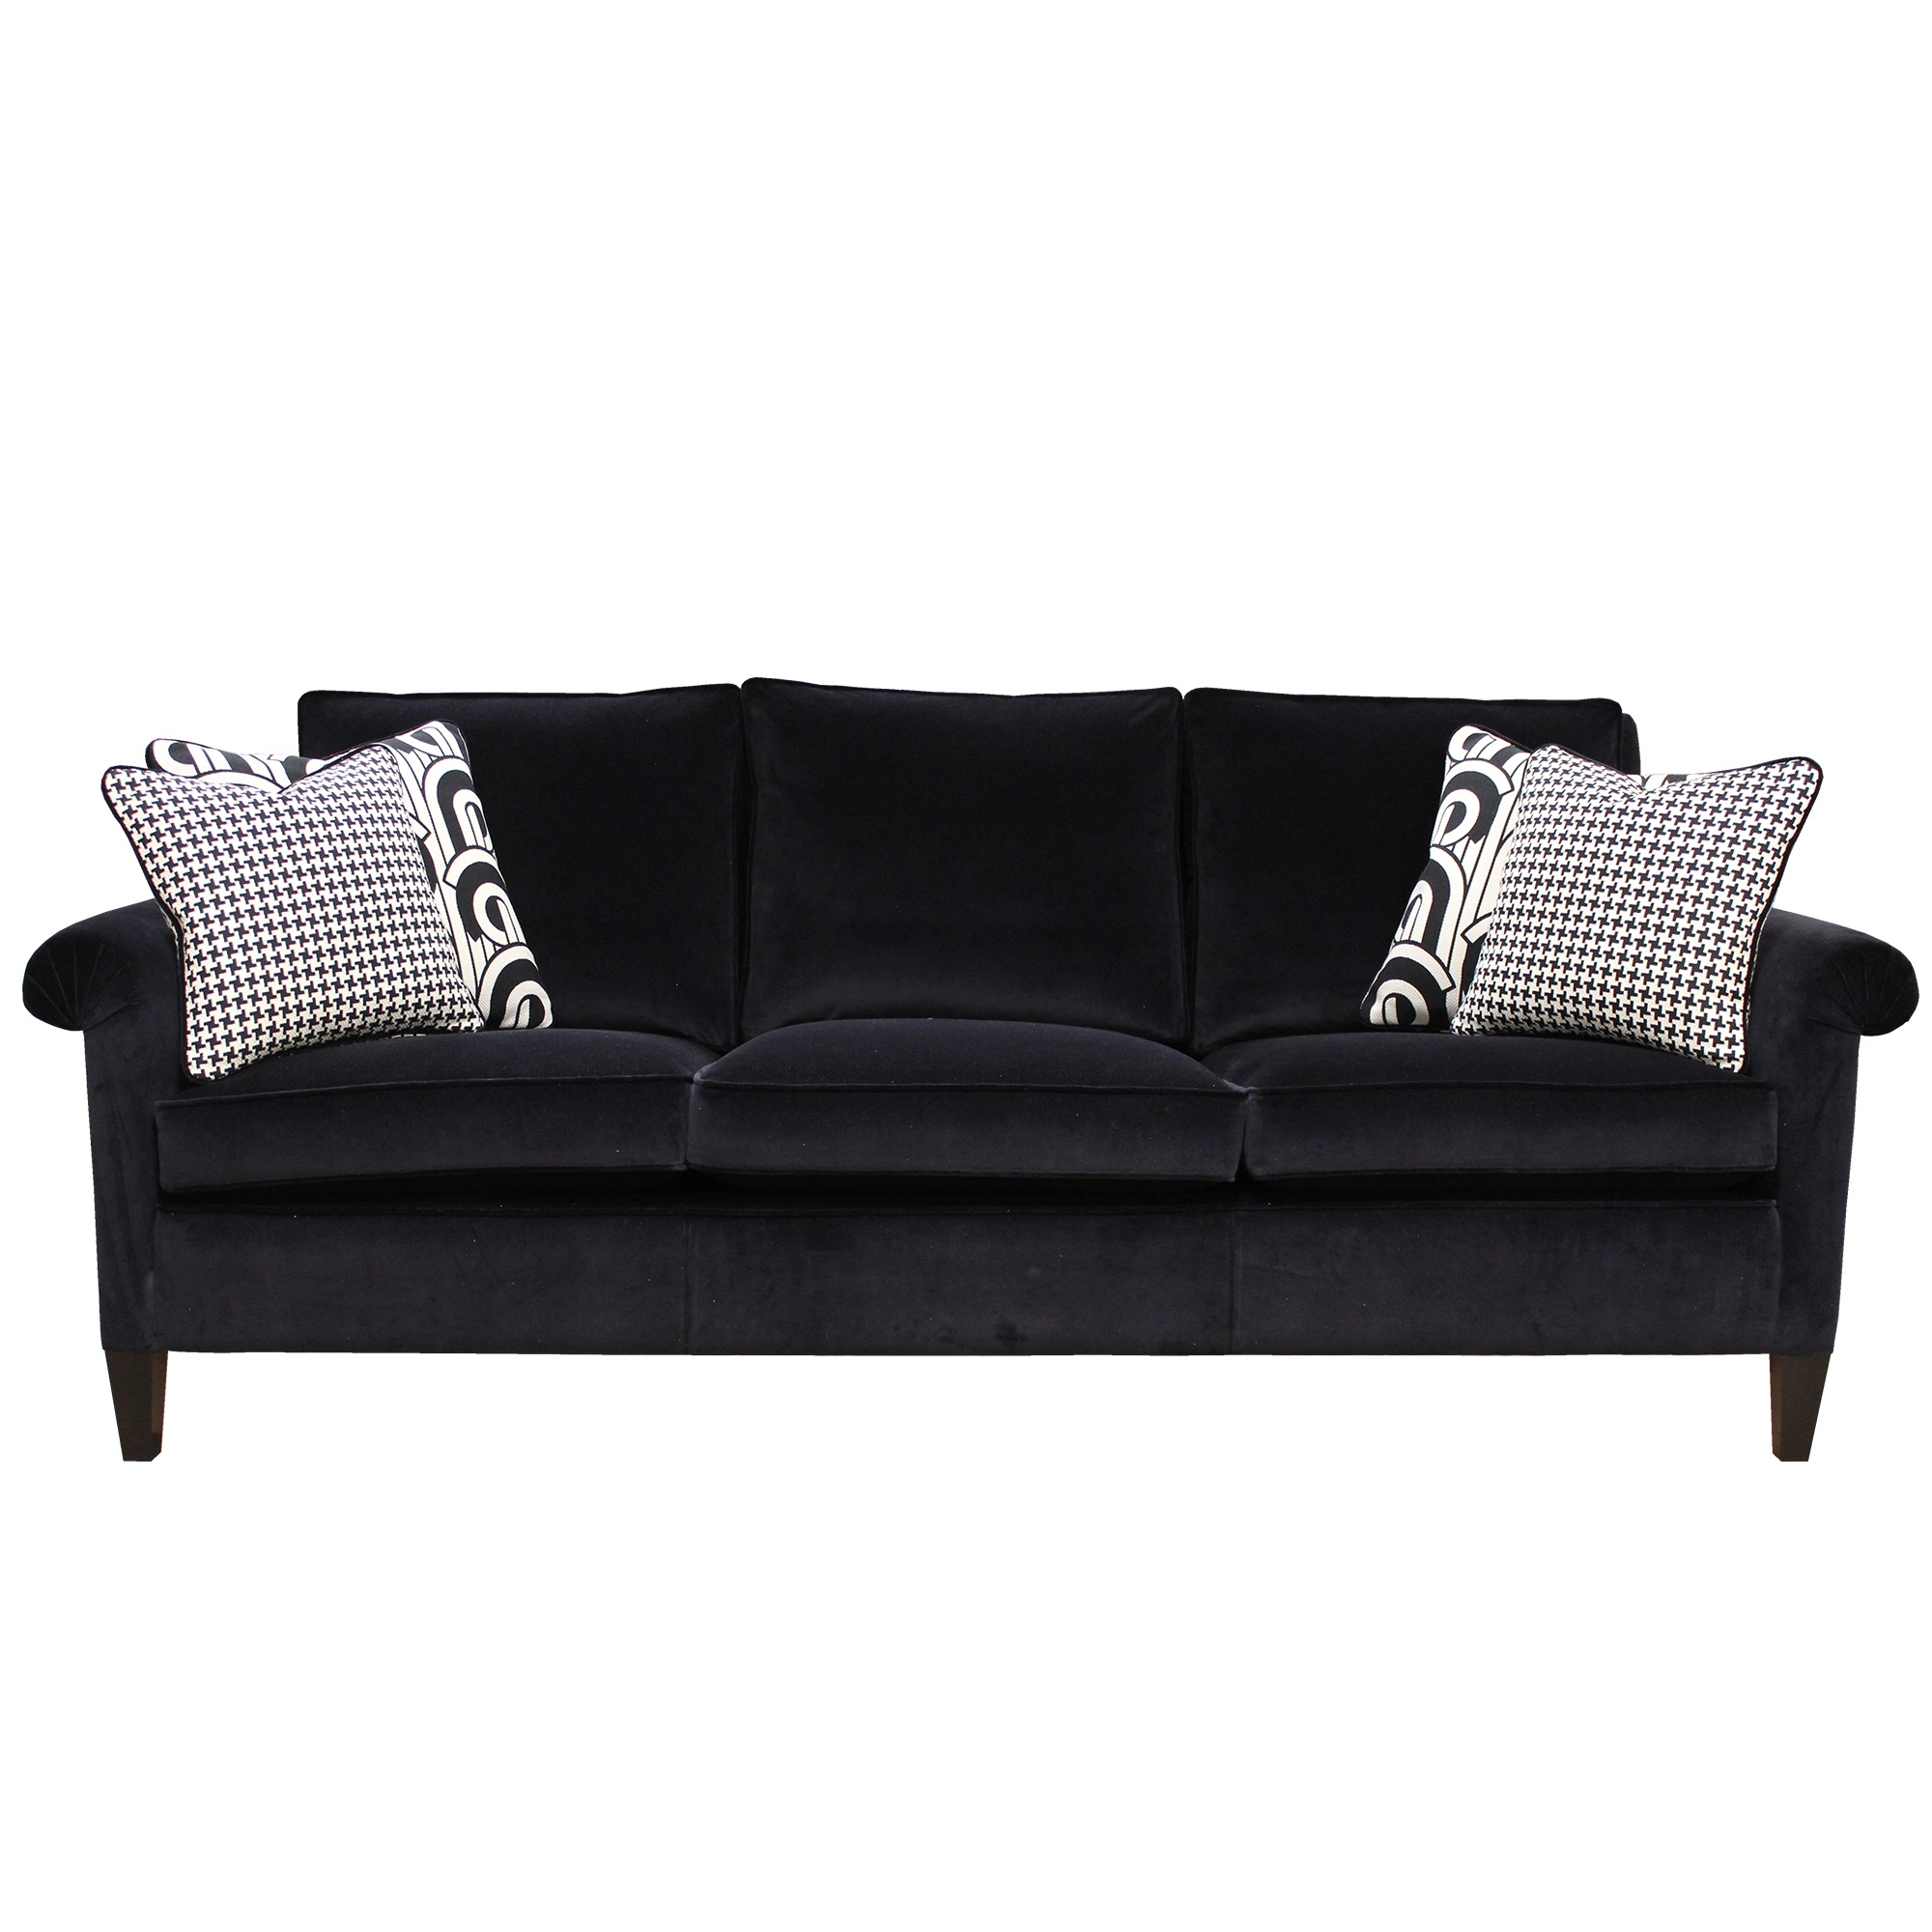 Duresta gabrielle studded large sofa duresta cookes for Studded couch